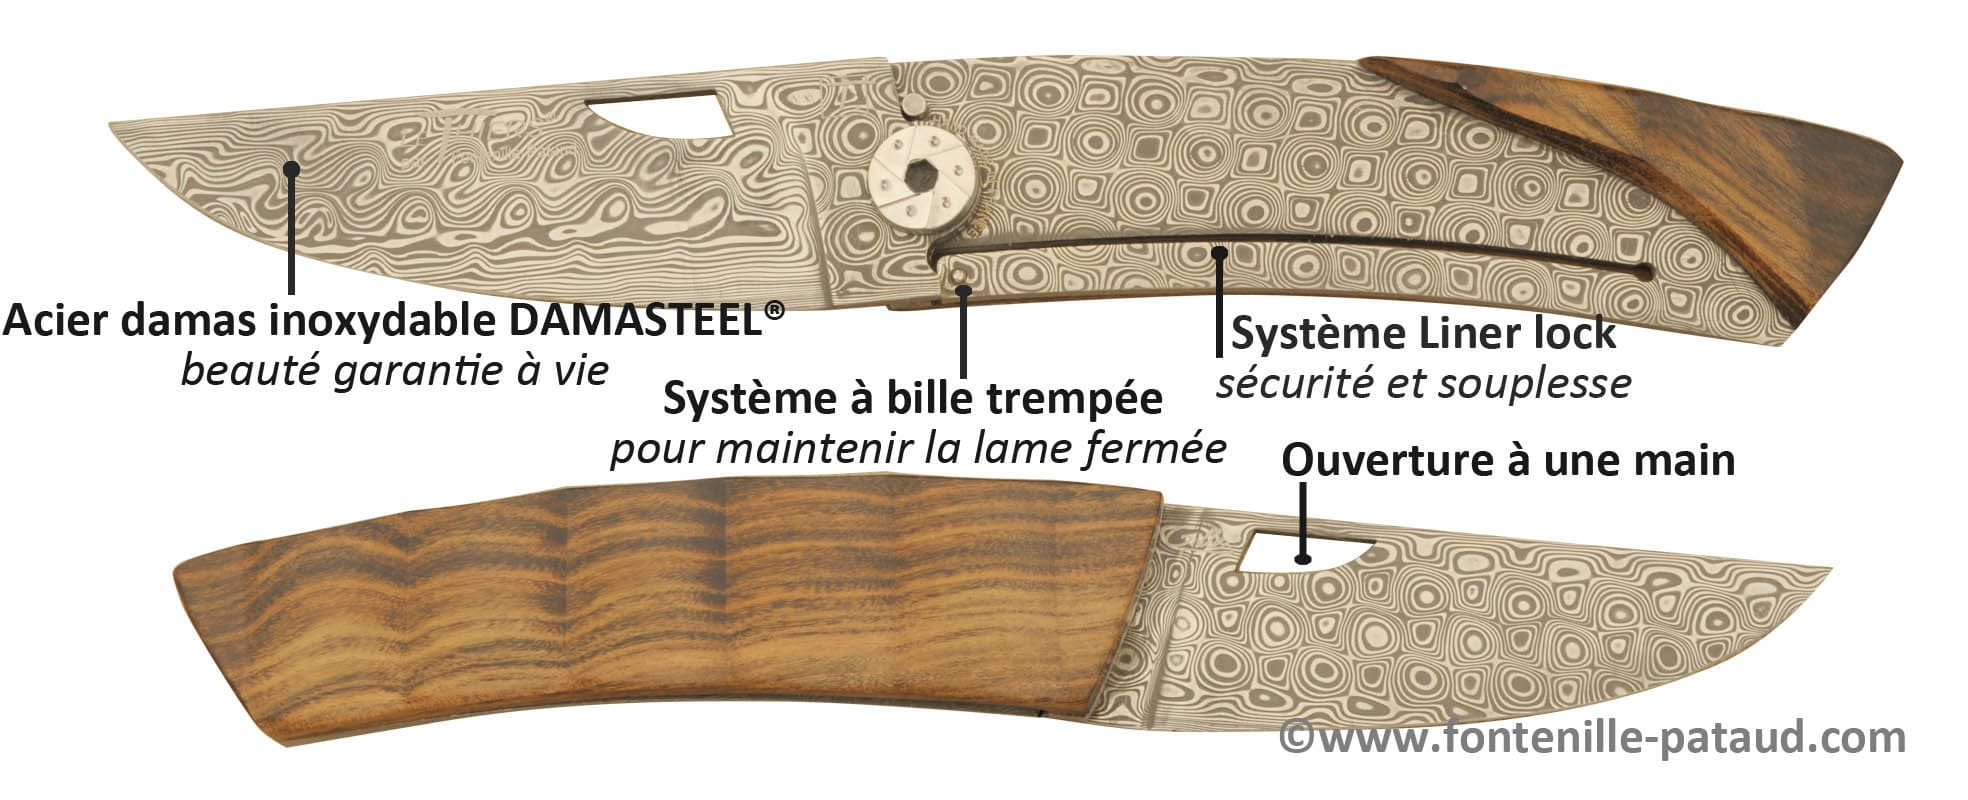 bed652112792 Couteau Le Thiers Damas inoxydable - Laguiole Fontenille Pataud